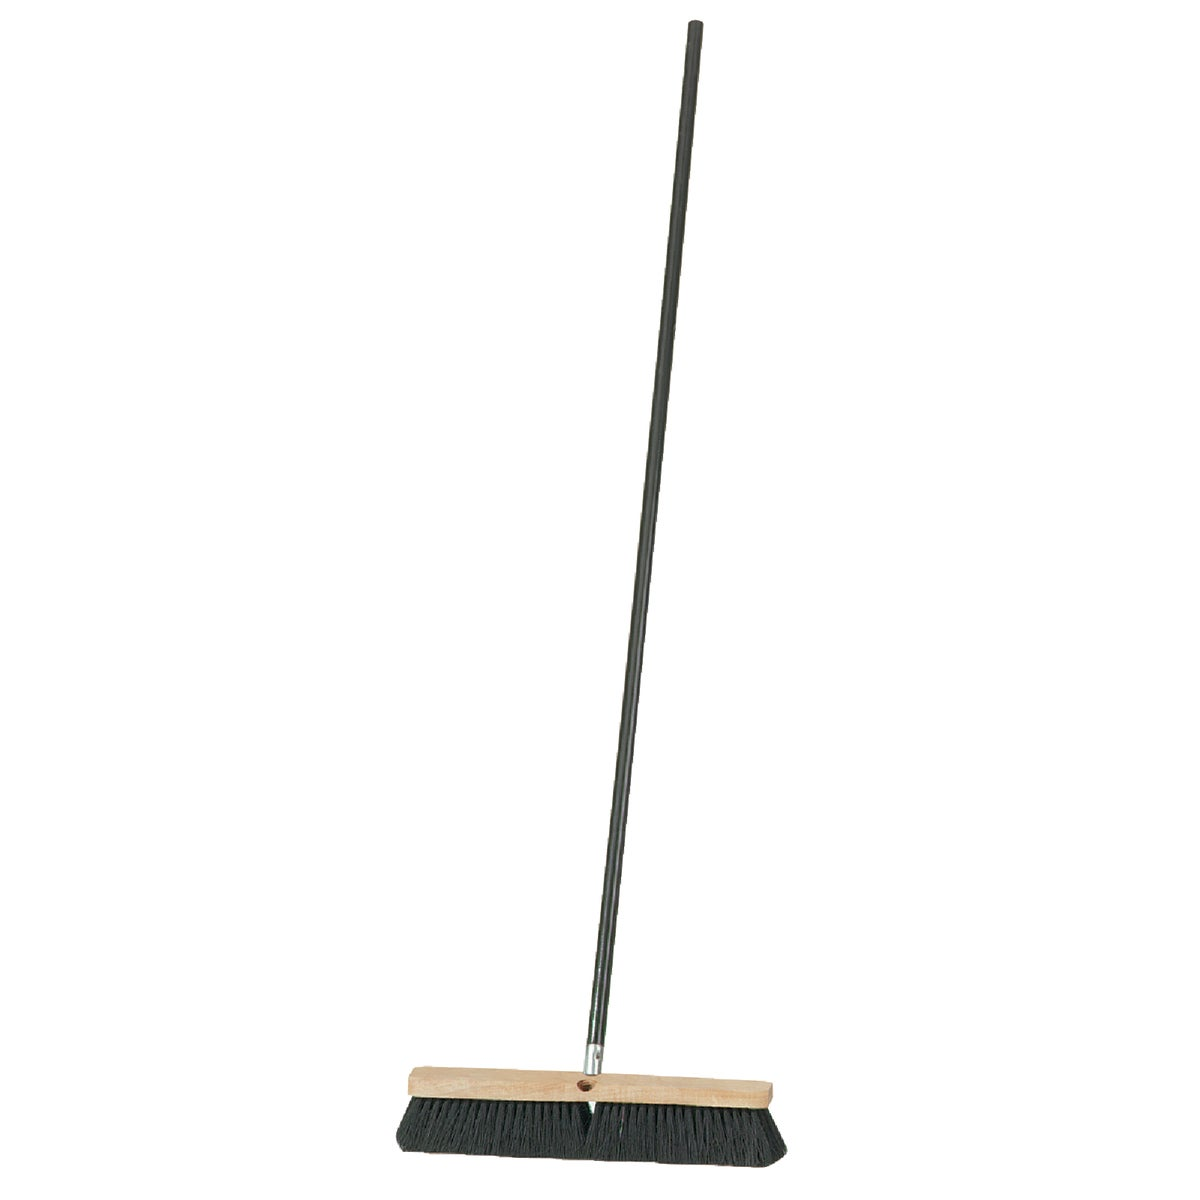 "18"" TAMPICO PUSH BROOM - 09984 by D Q B Ind"